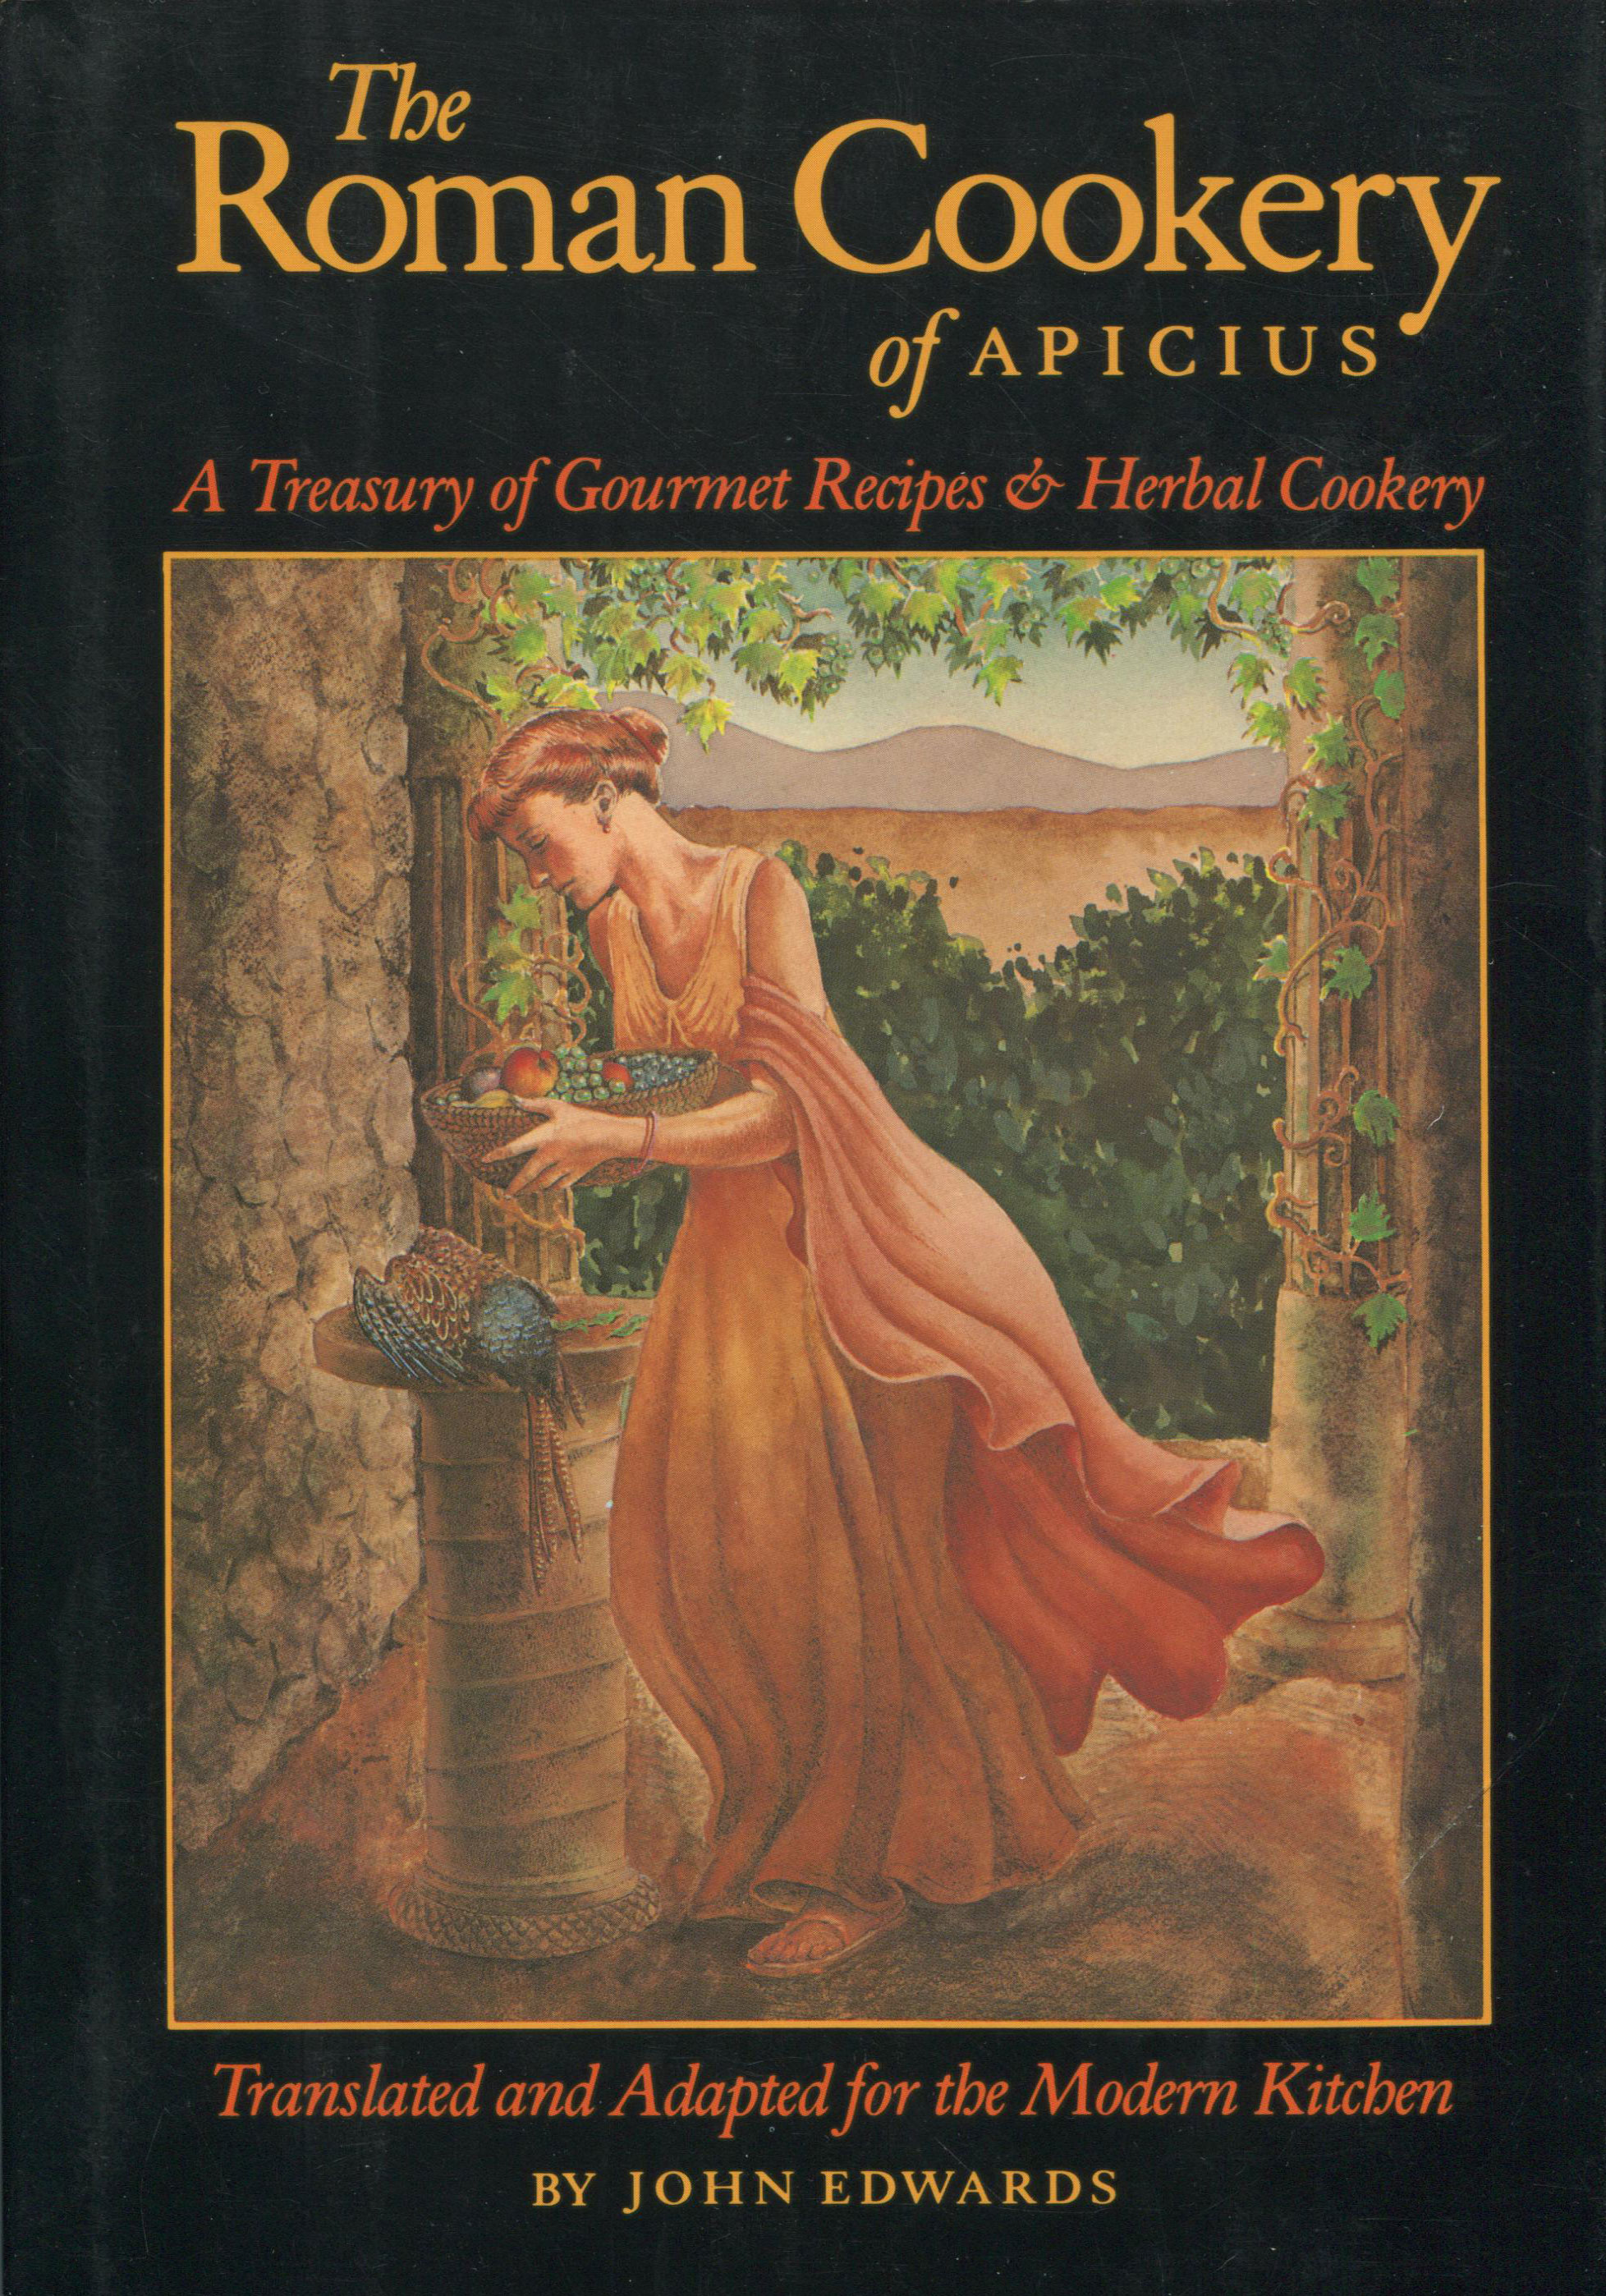 TBT Cookbook Review: The Roman Cookery of Apicius